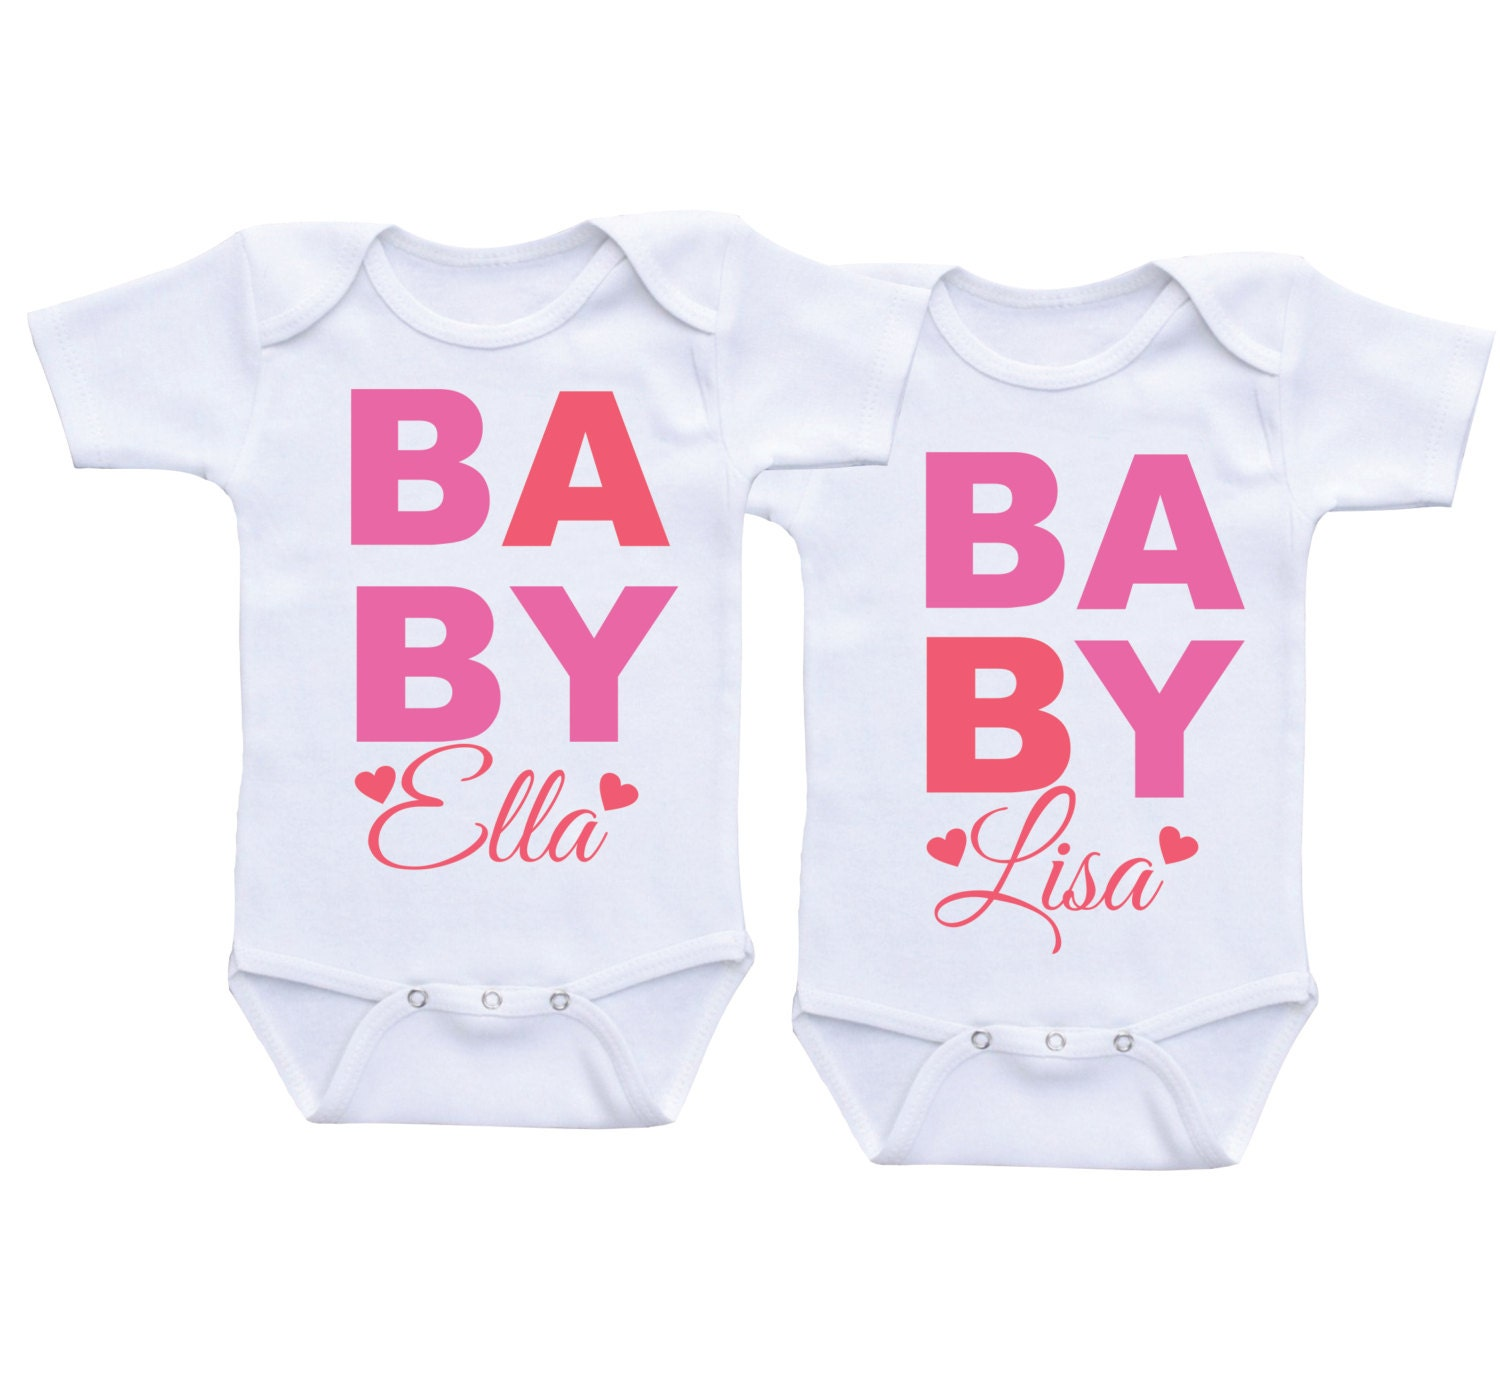 Cute Twin esie for baby girlsTwins esie Clothing for